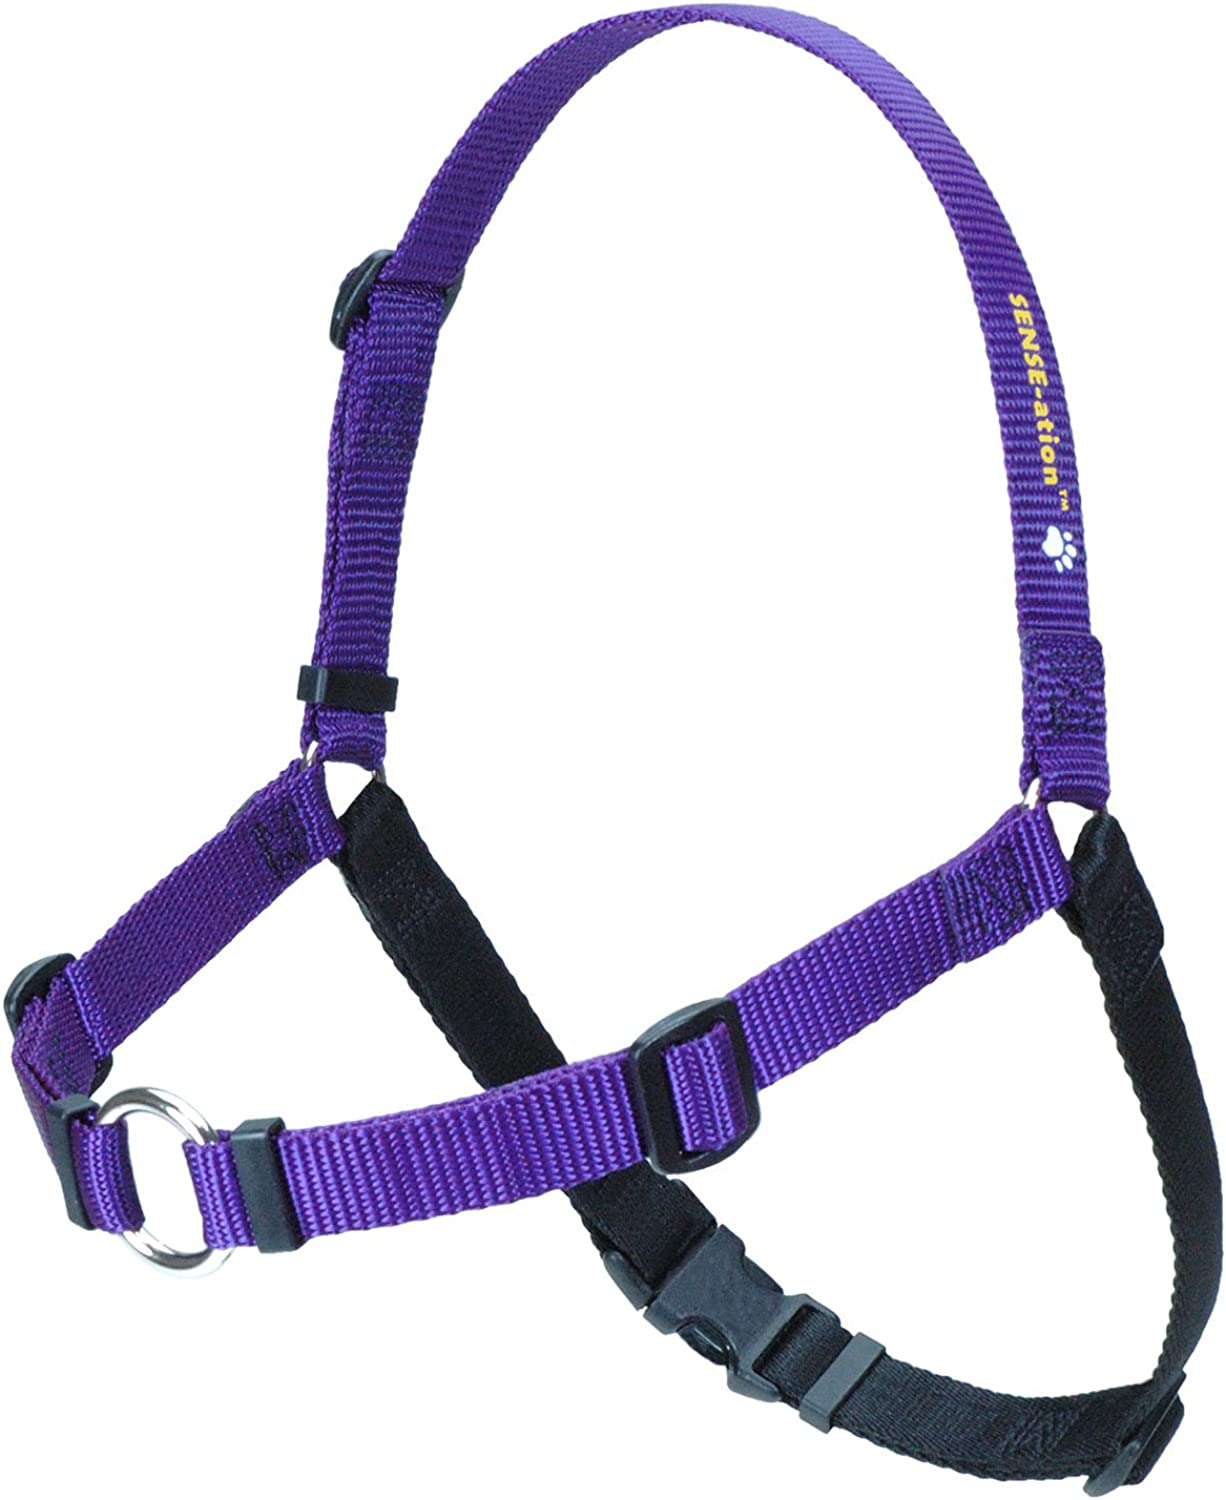 Senseation NoPull Dog Harness (Purple, Medium Large Narrow) by SenseAtion Harness